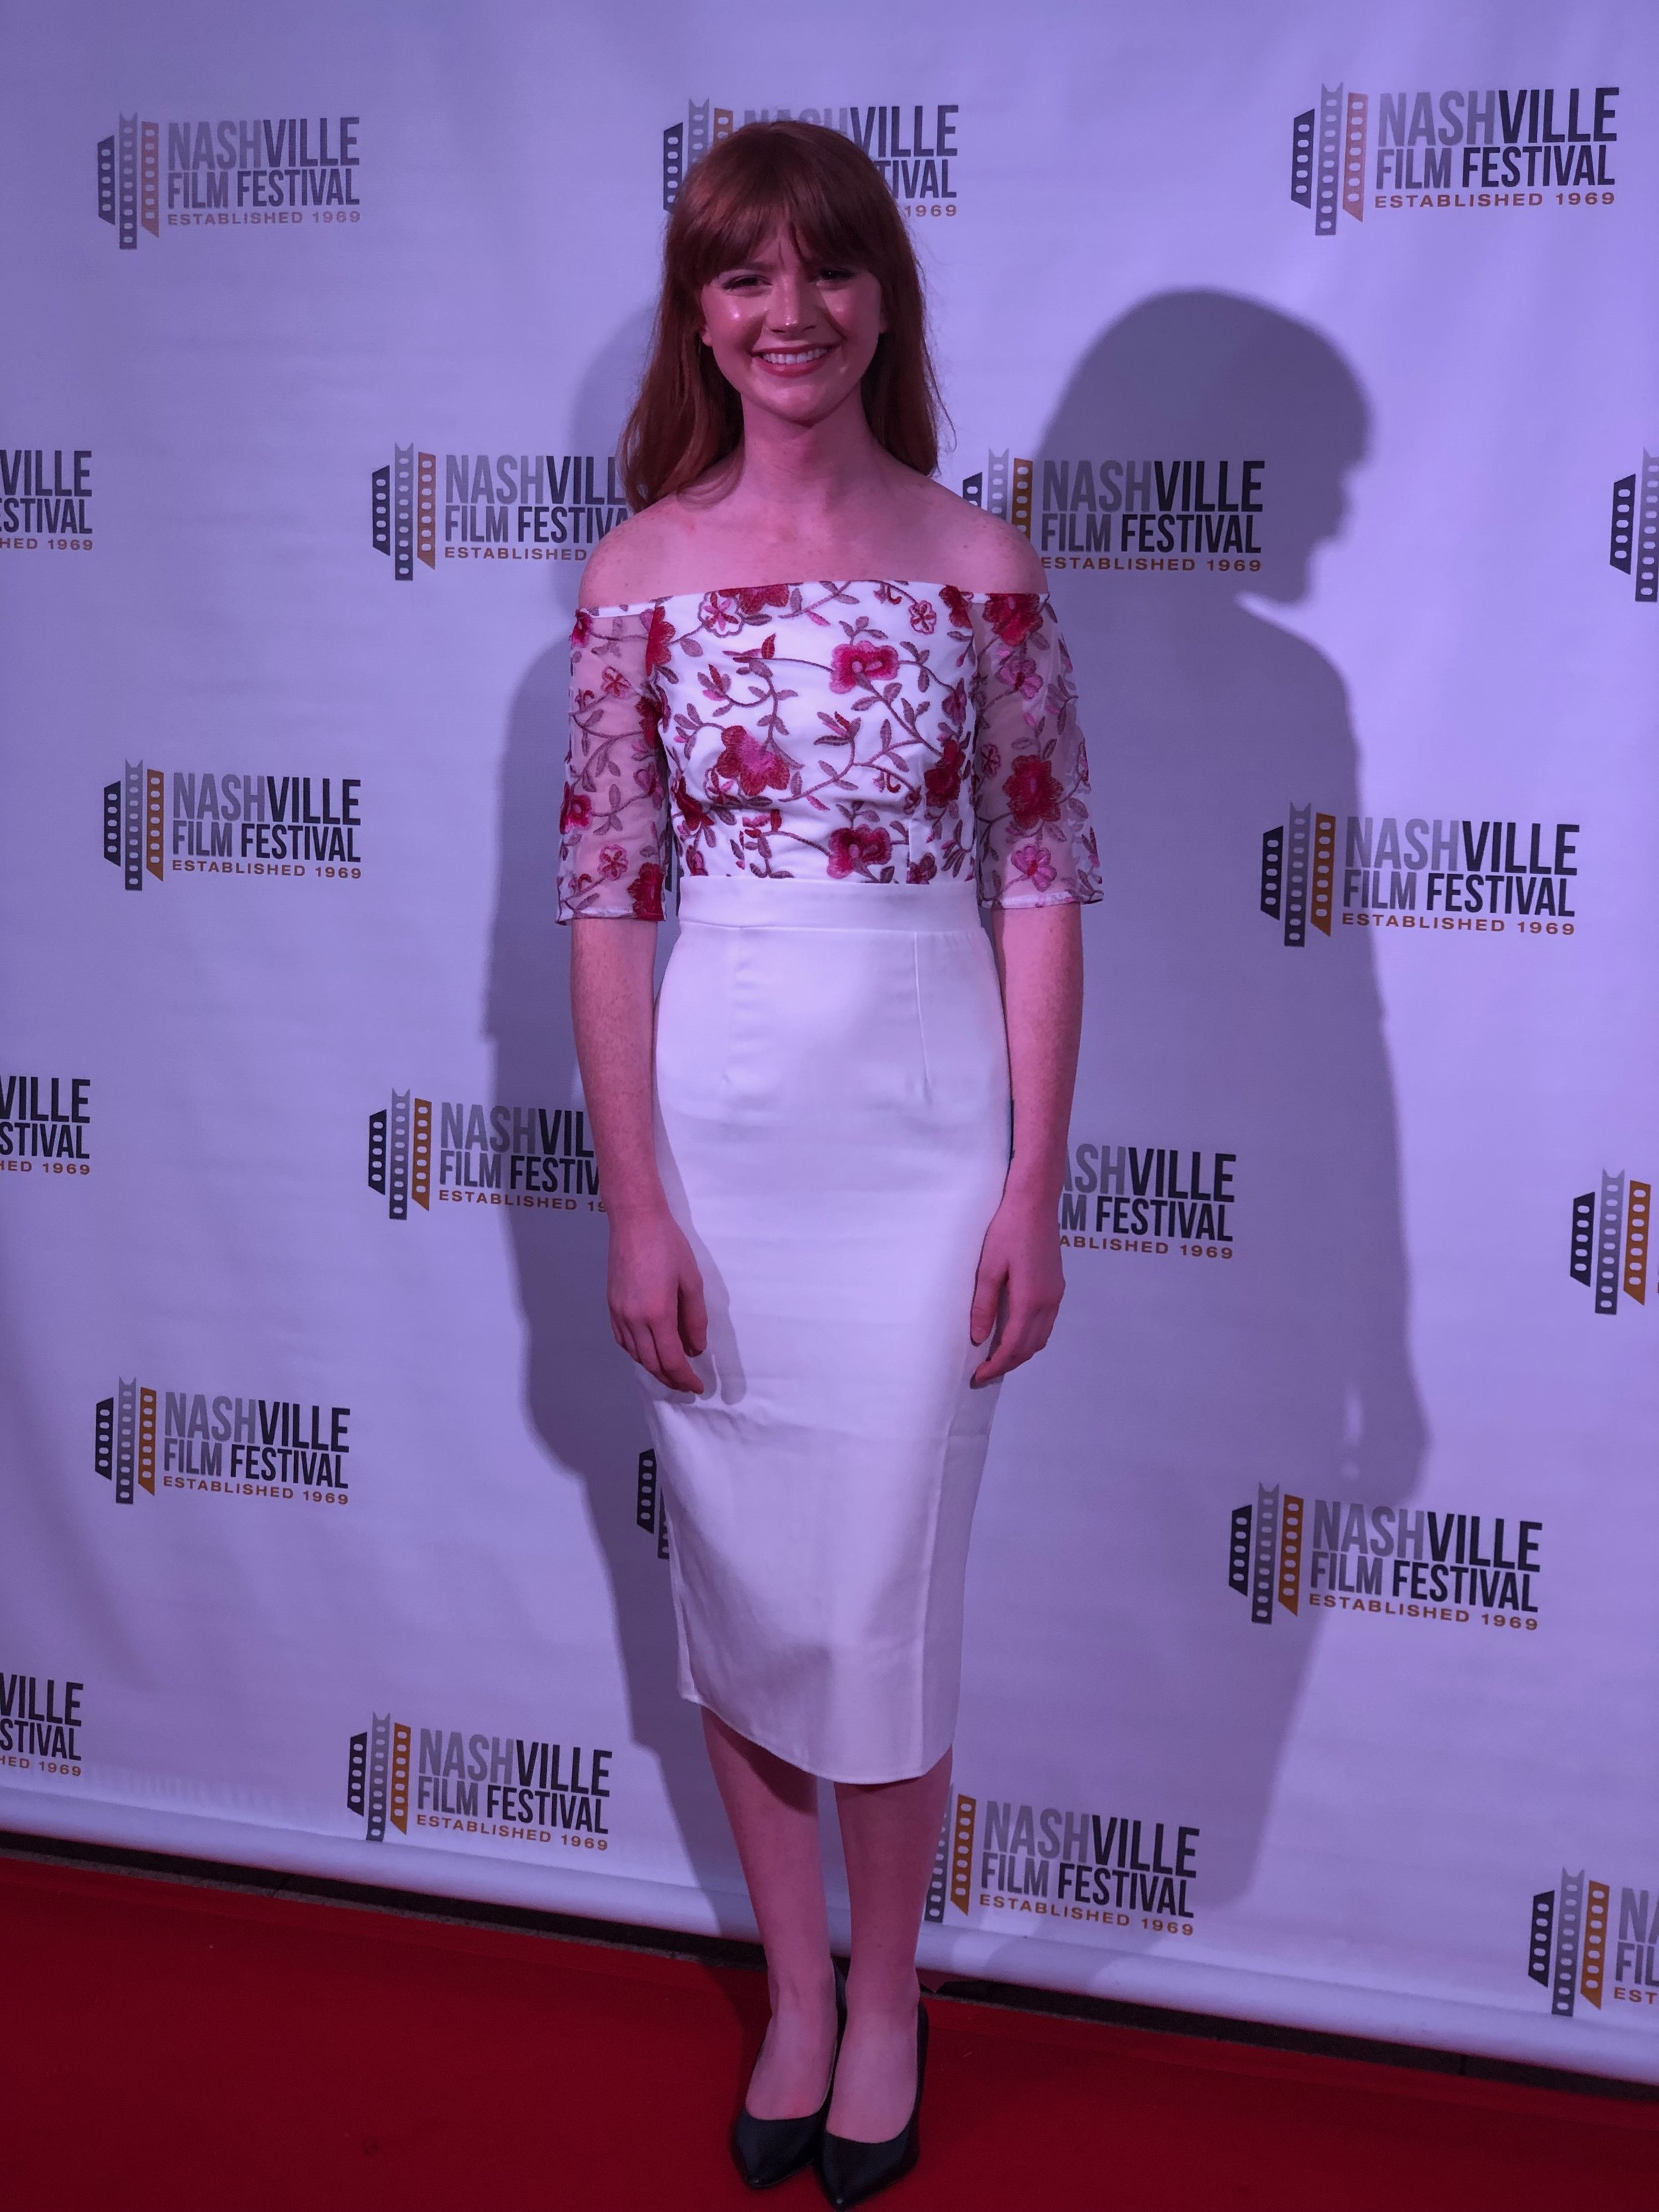 Allison on the red carpet!